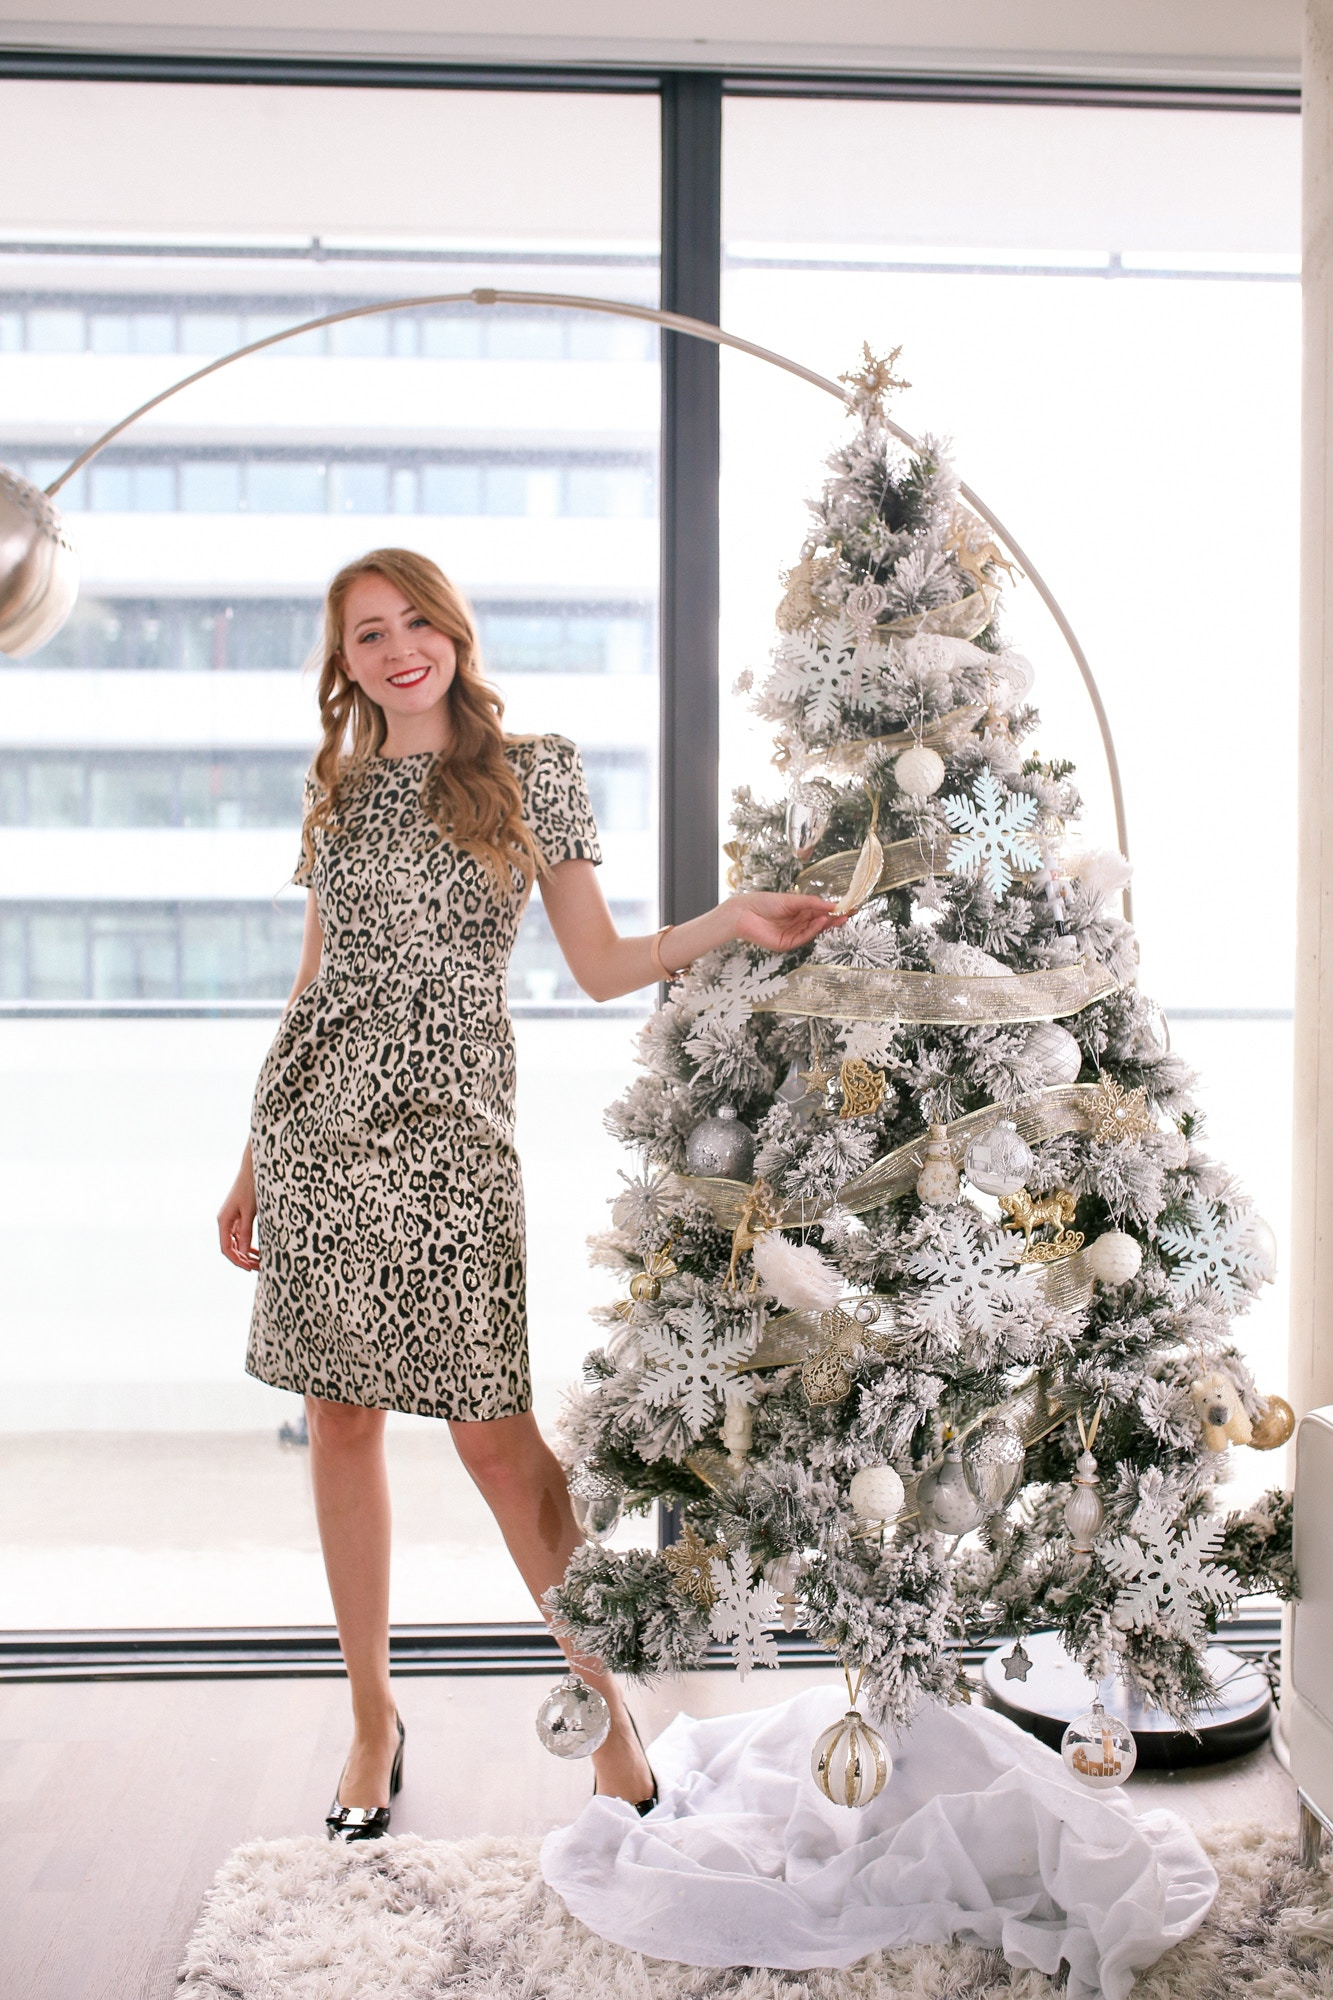 This chic Metallic leopard print dress from the Rachel Parcell Holiday collection at Nordstrom is so easy to dress up with pumps, sandals and a fun faux fur topper.